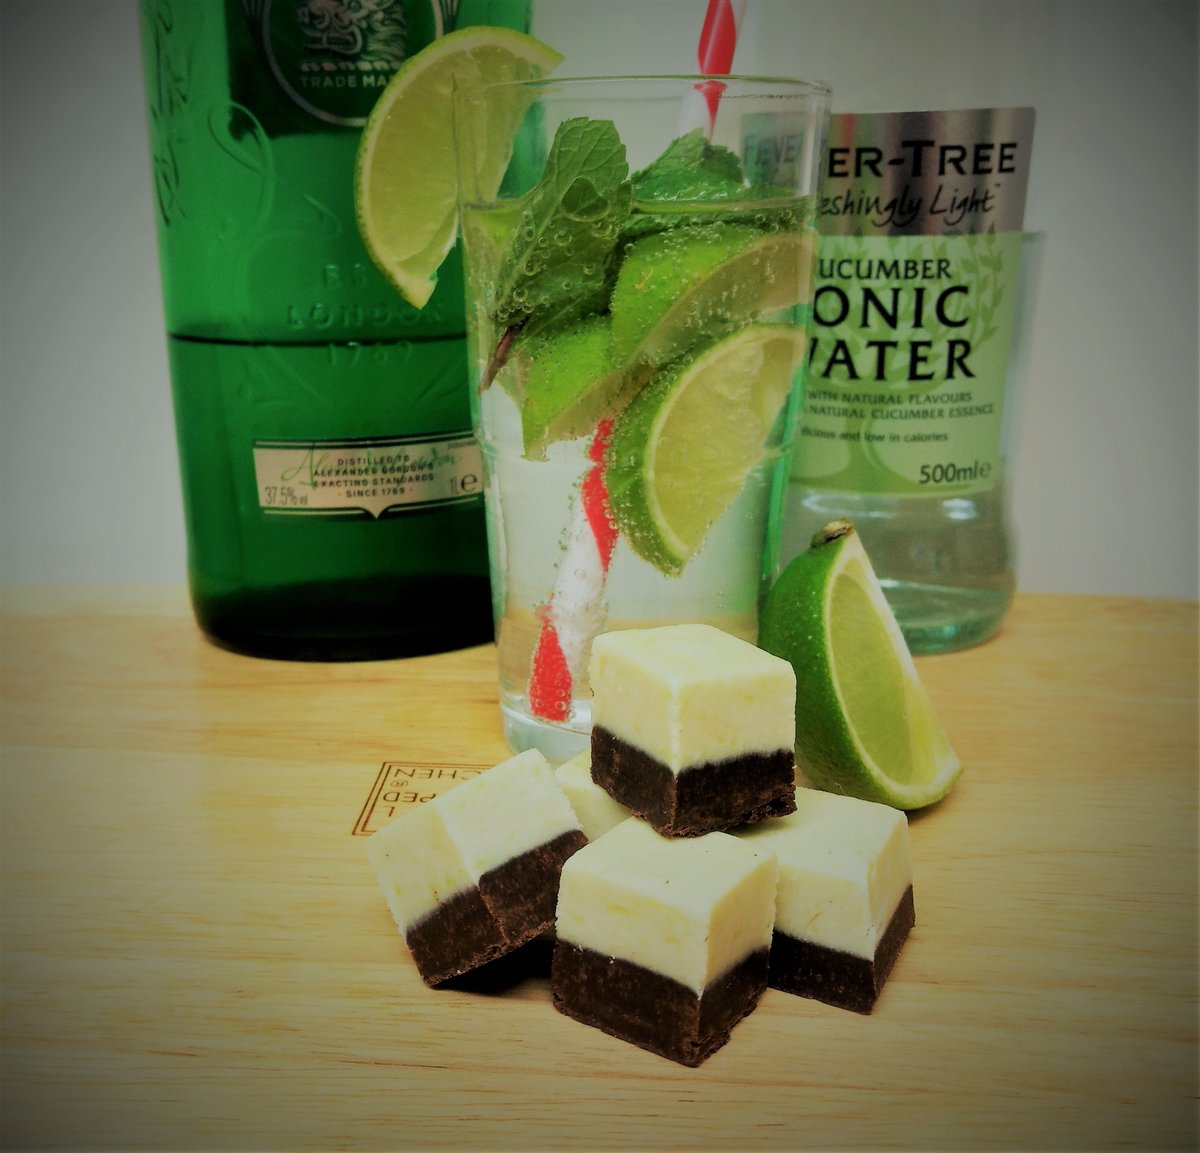 It doesn't have to be summer to enjoy our Gin and lime FabFudge, but it helps. #Vegan #TreatYourself   #ElevensesHour #Dairyfree #Veganuary #Veganuary2021 #WednesdayMotivation